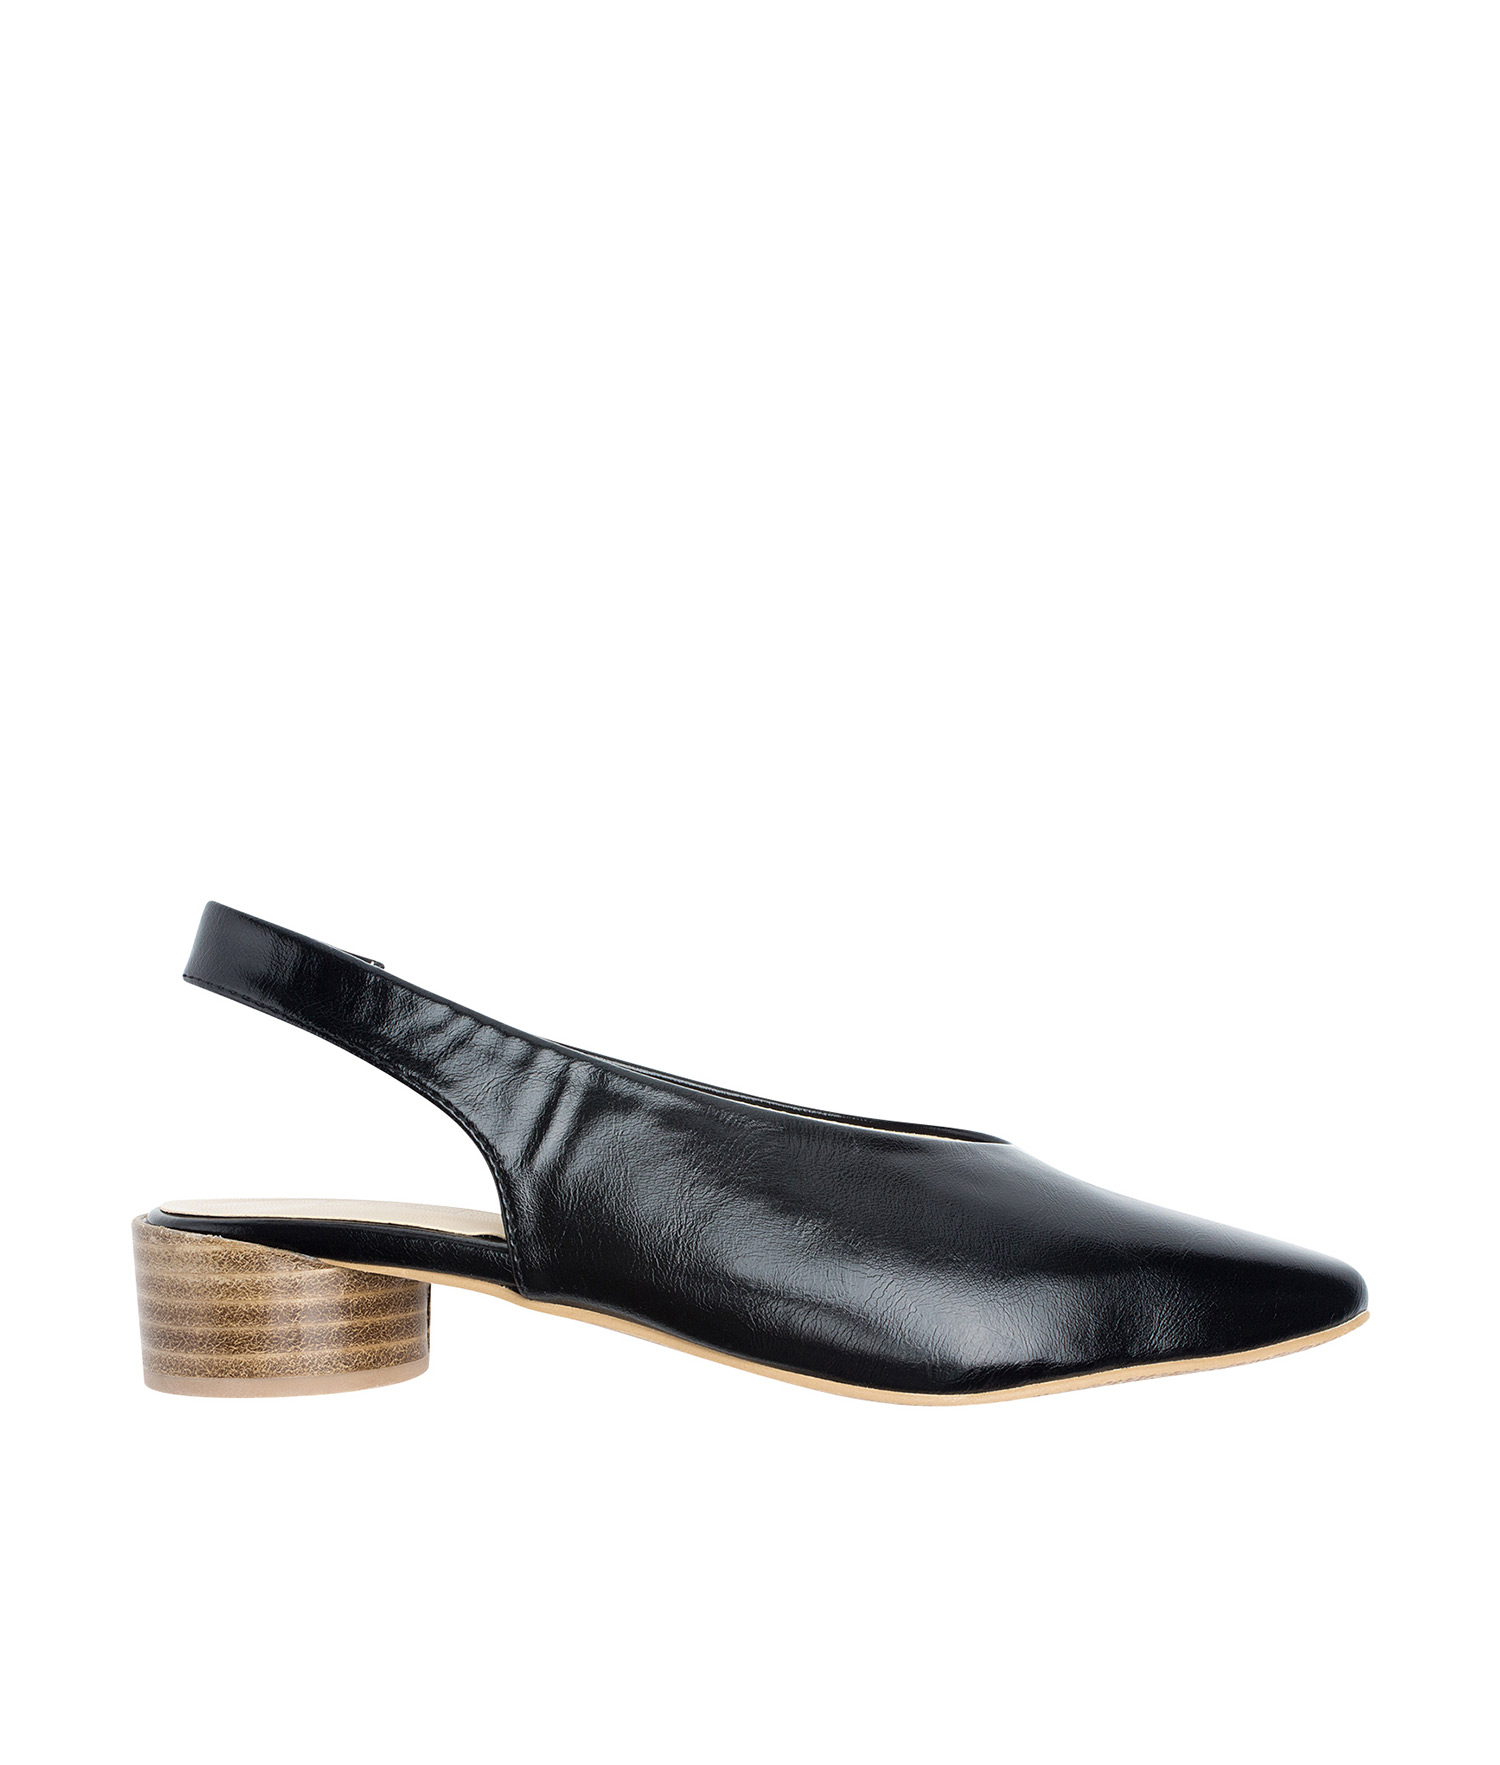 a2ab6be60c4 Womens Slingback Shoes Low Heel